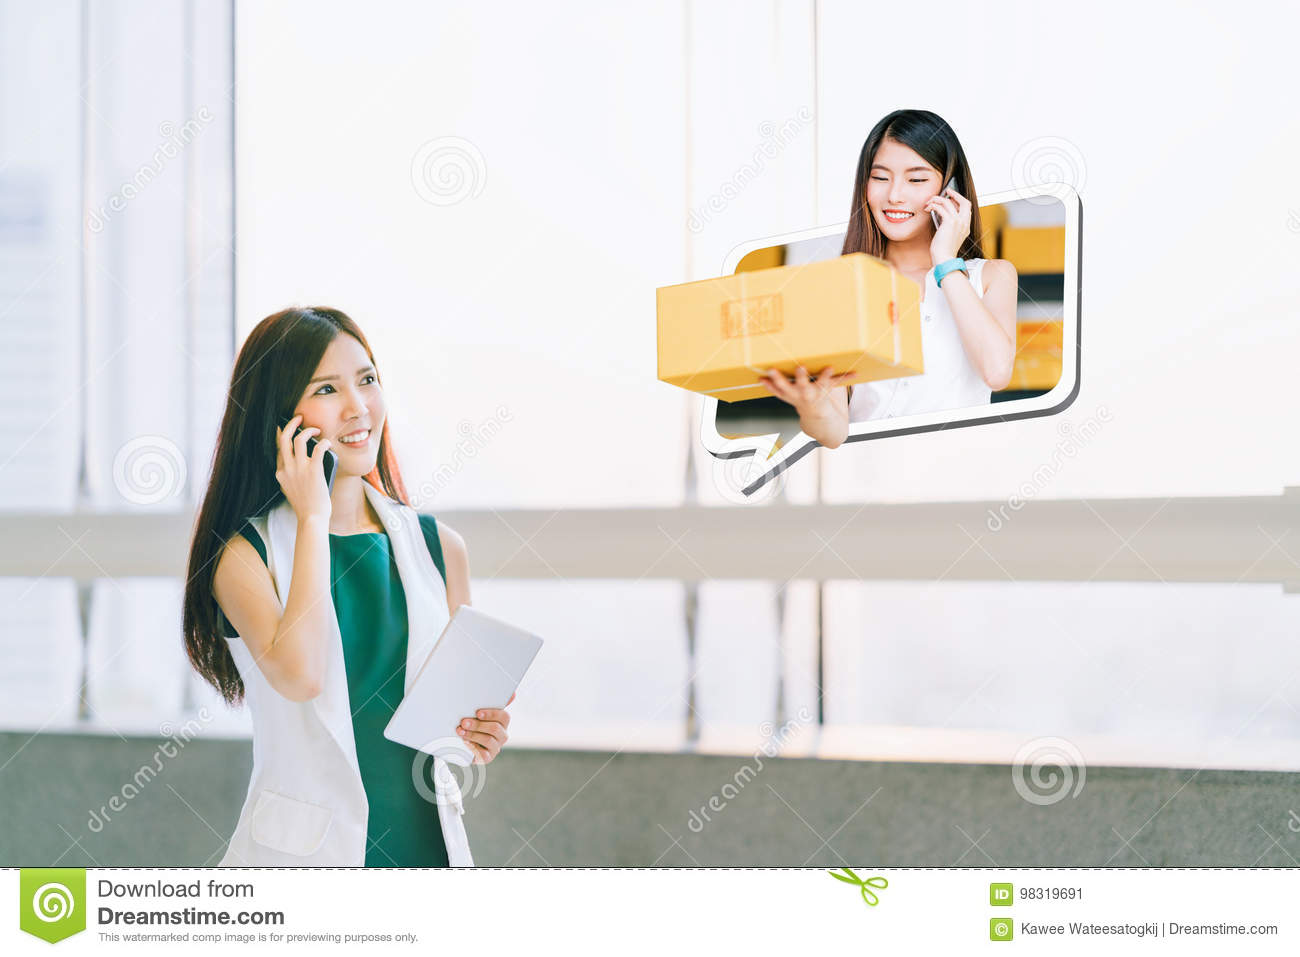 Beautiful girl shop using smartphone, online merchant deliver package. Ecommerce communication, SME shipping commercial concept